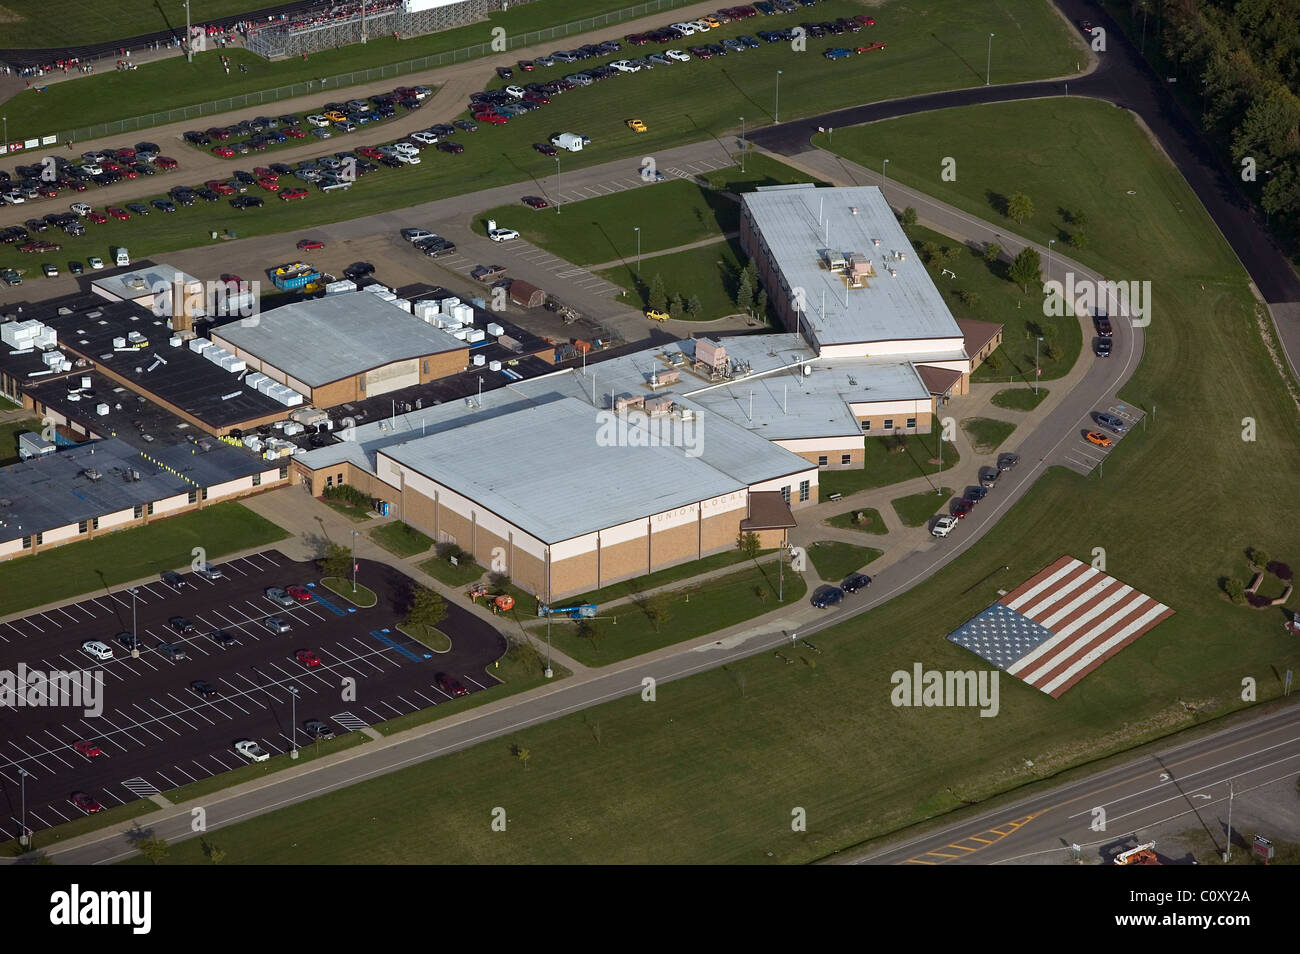 aerial view above school buildings flag United States of America - Stock Image